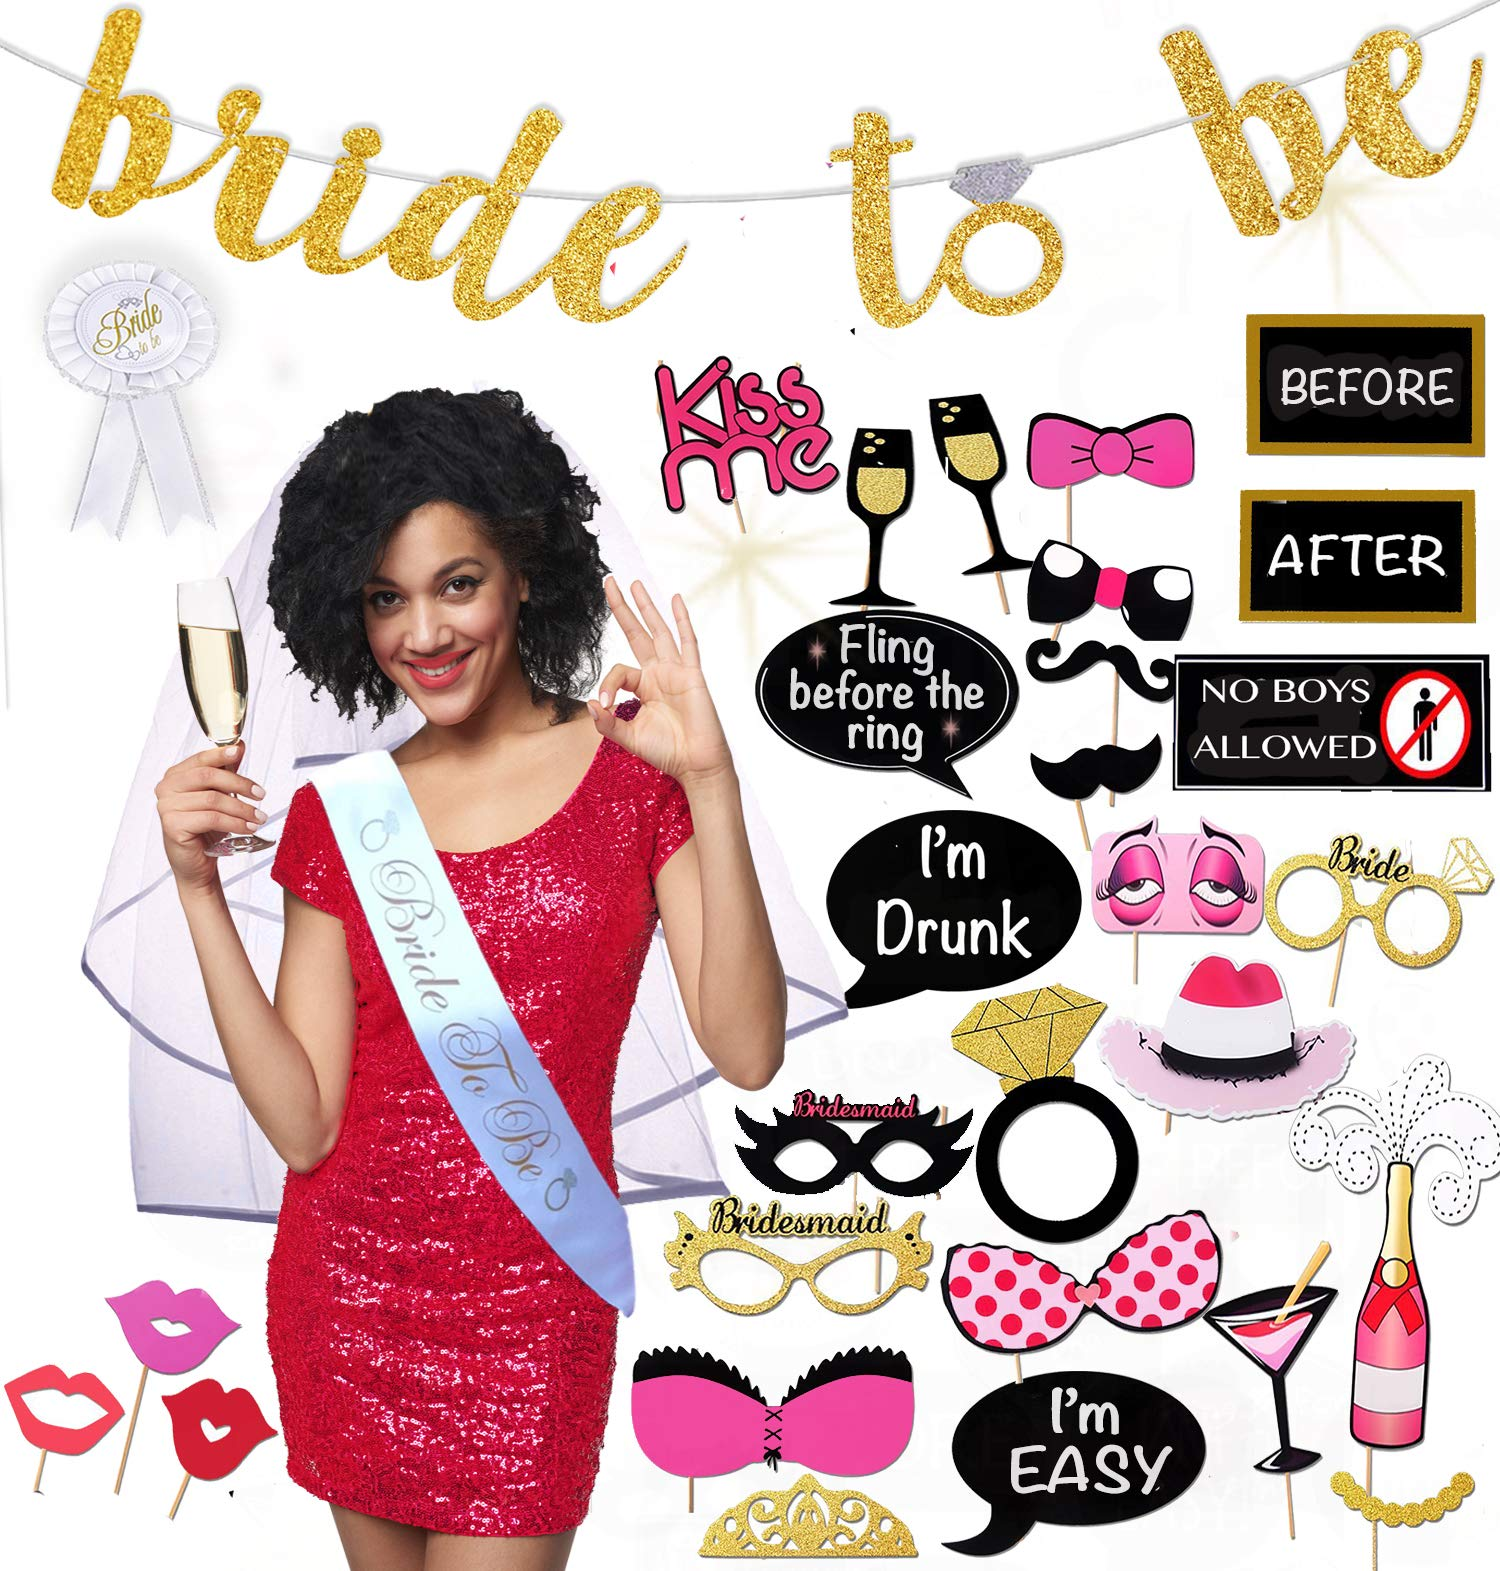 Bachelorette Party Decorations Kit | Ultimate Bridal Shower Supplies Pack All-In-One 36 Piece Bride To Be Package | Bride Sash, Veil, Badge, Banner, Photo Props by Scapa Pro